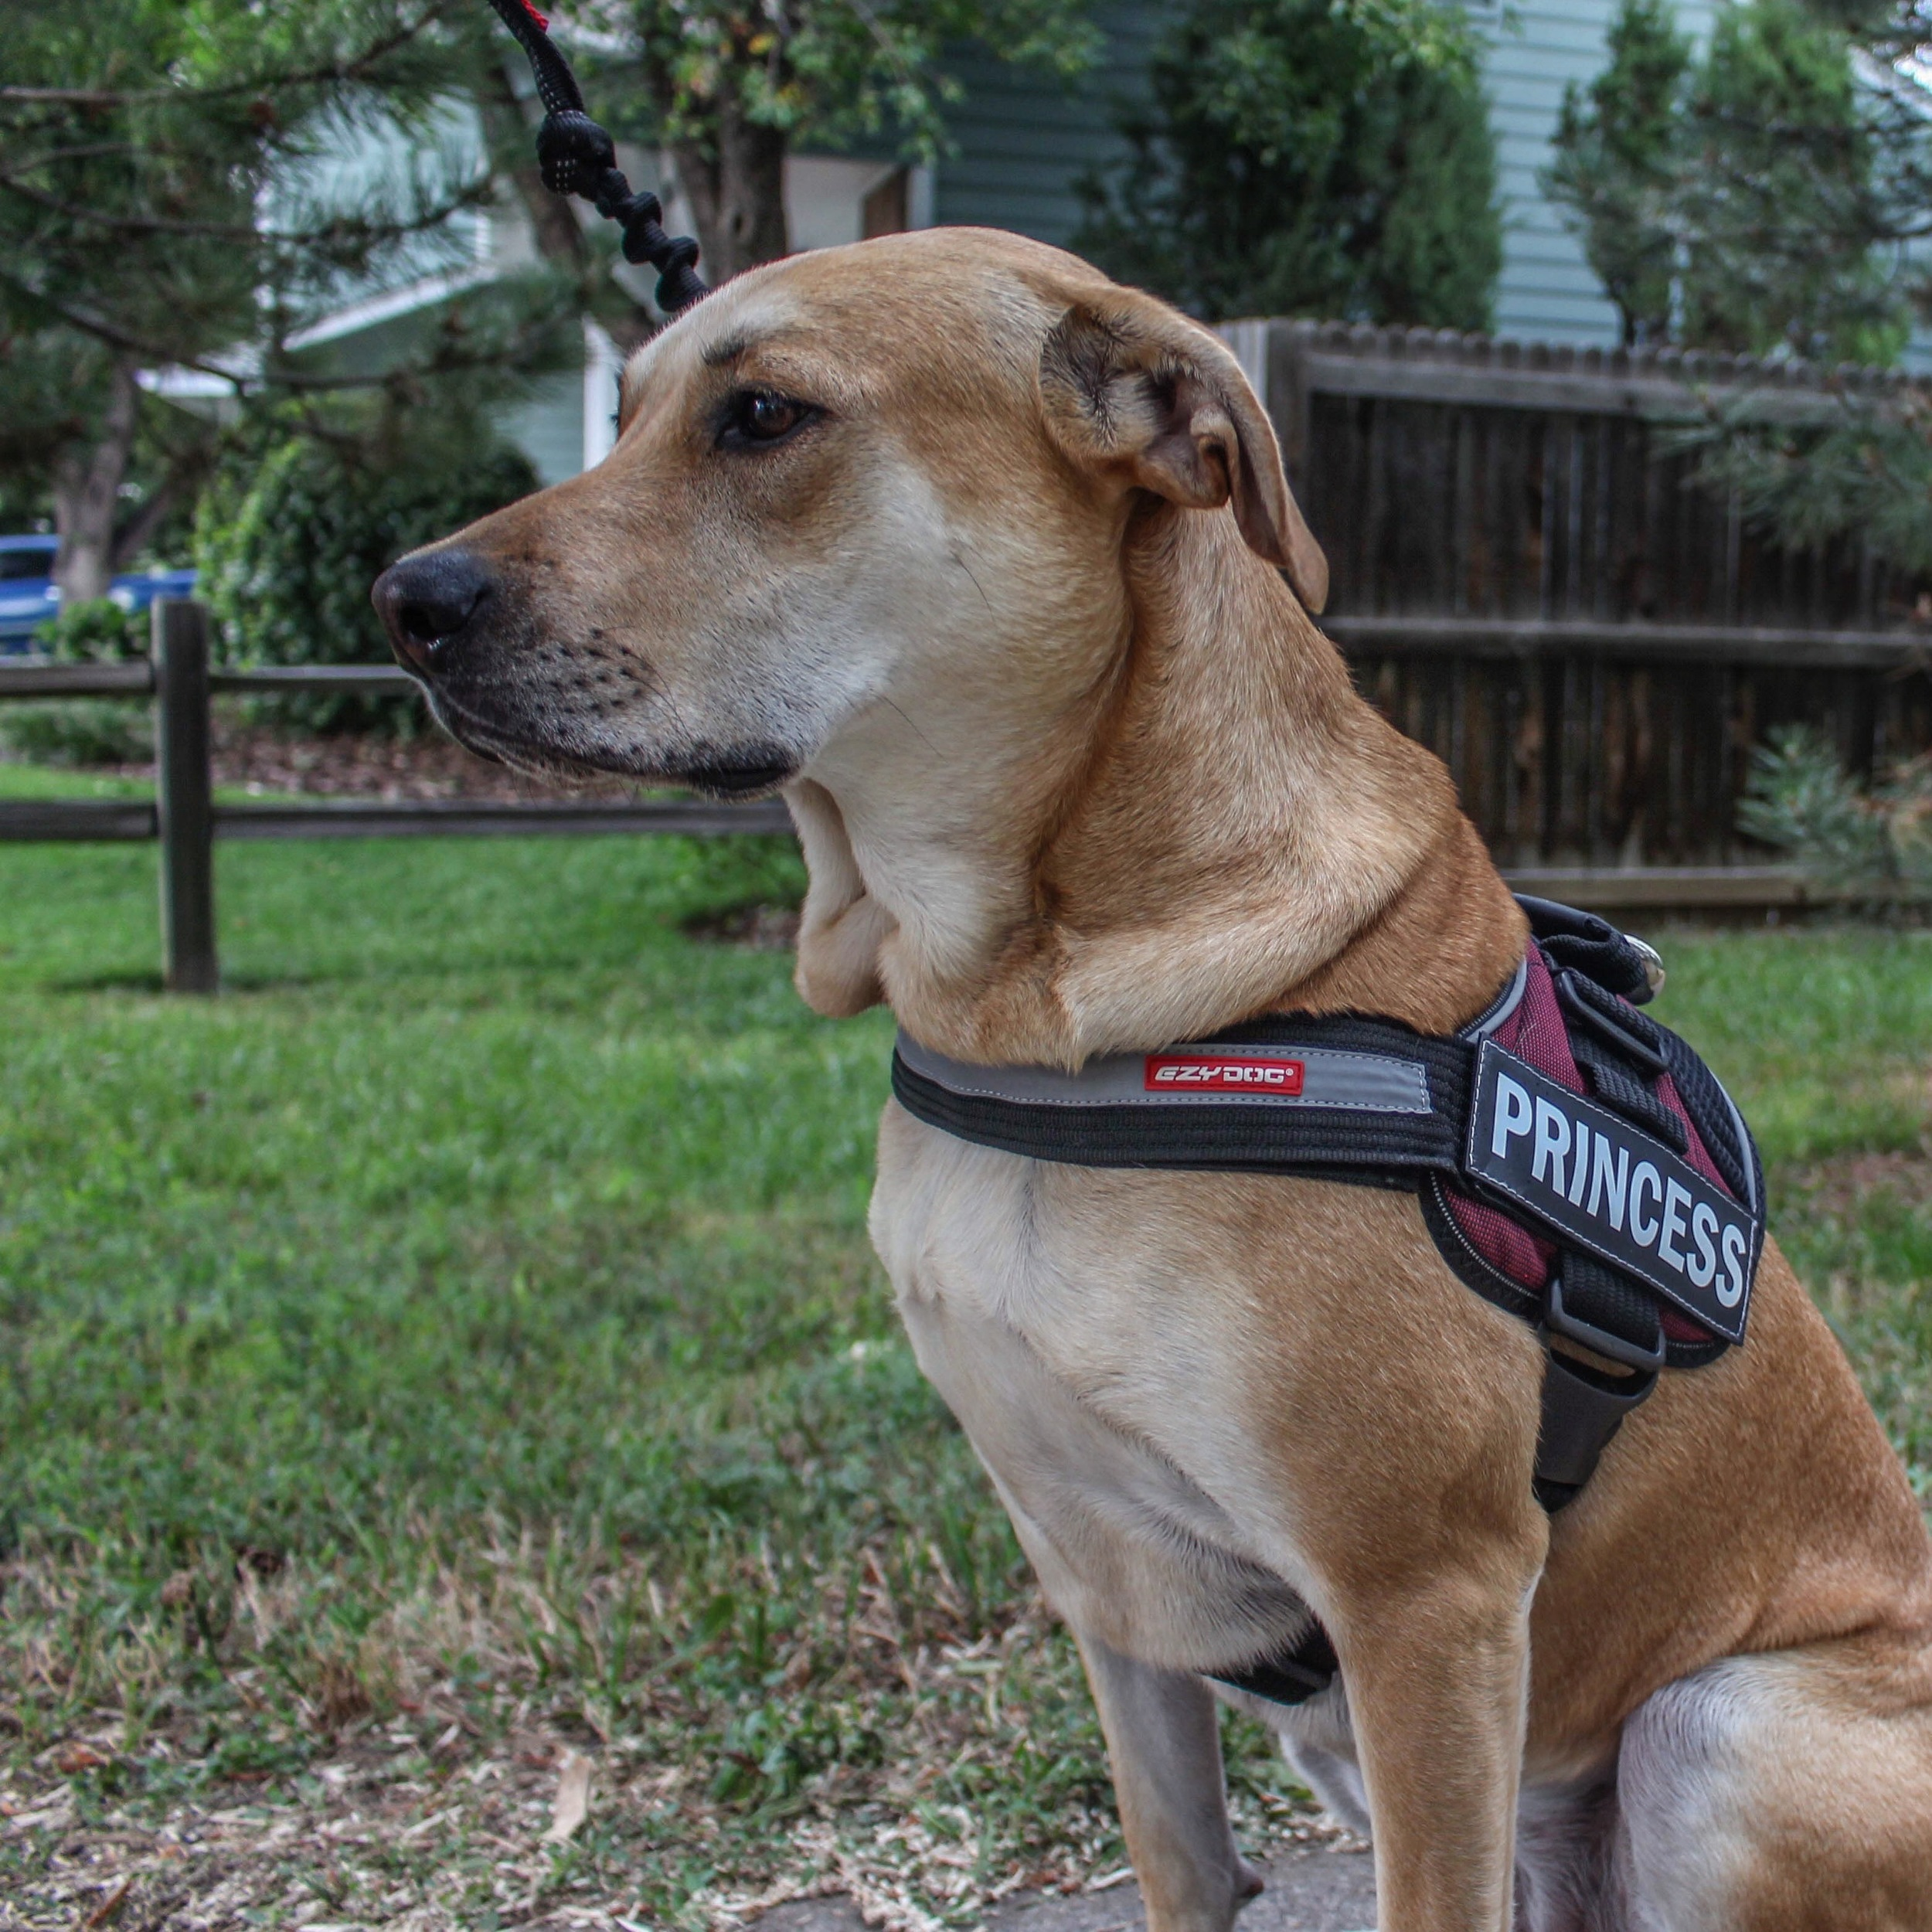 The EZYDOG Convert Harness Review — RMK Outdoors